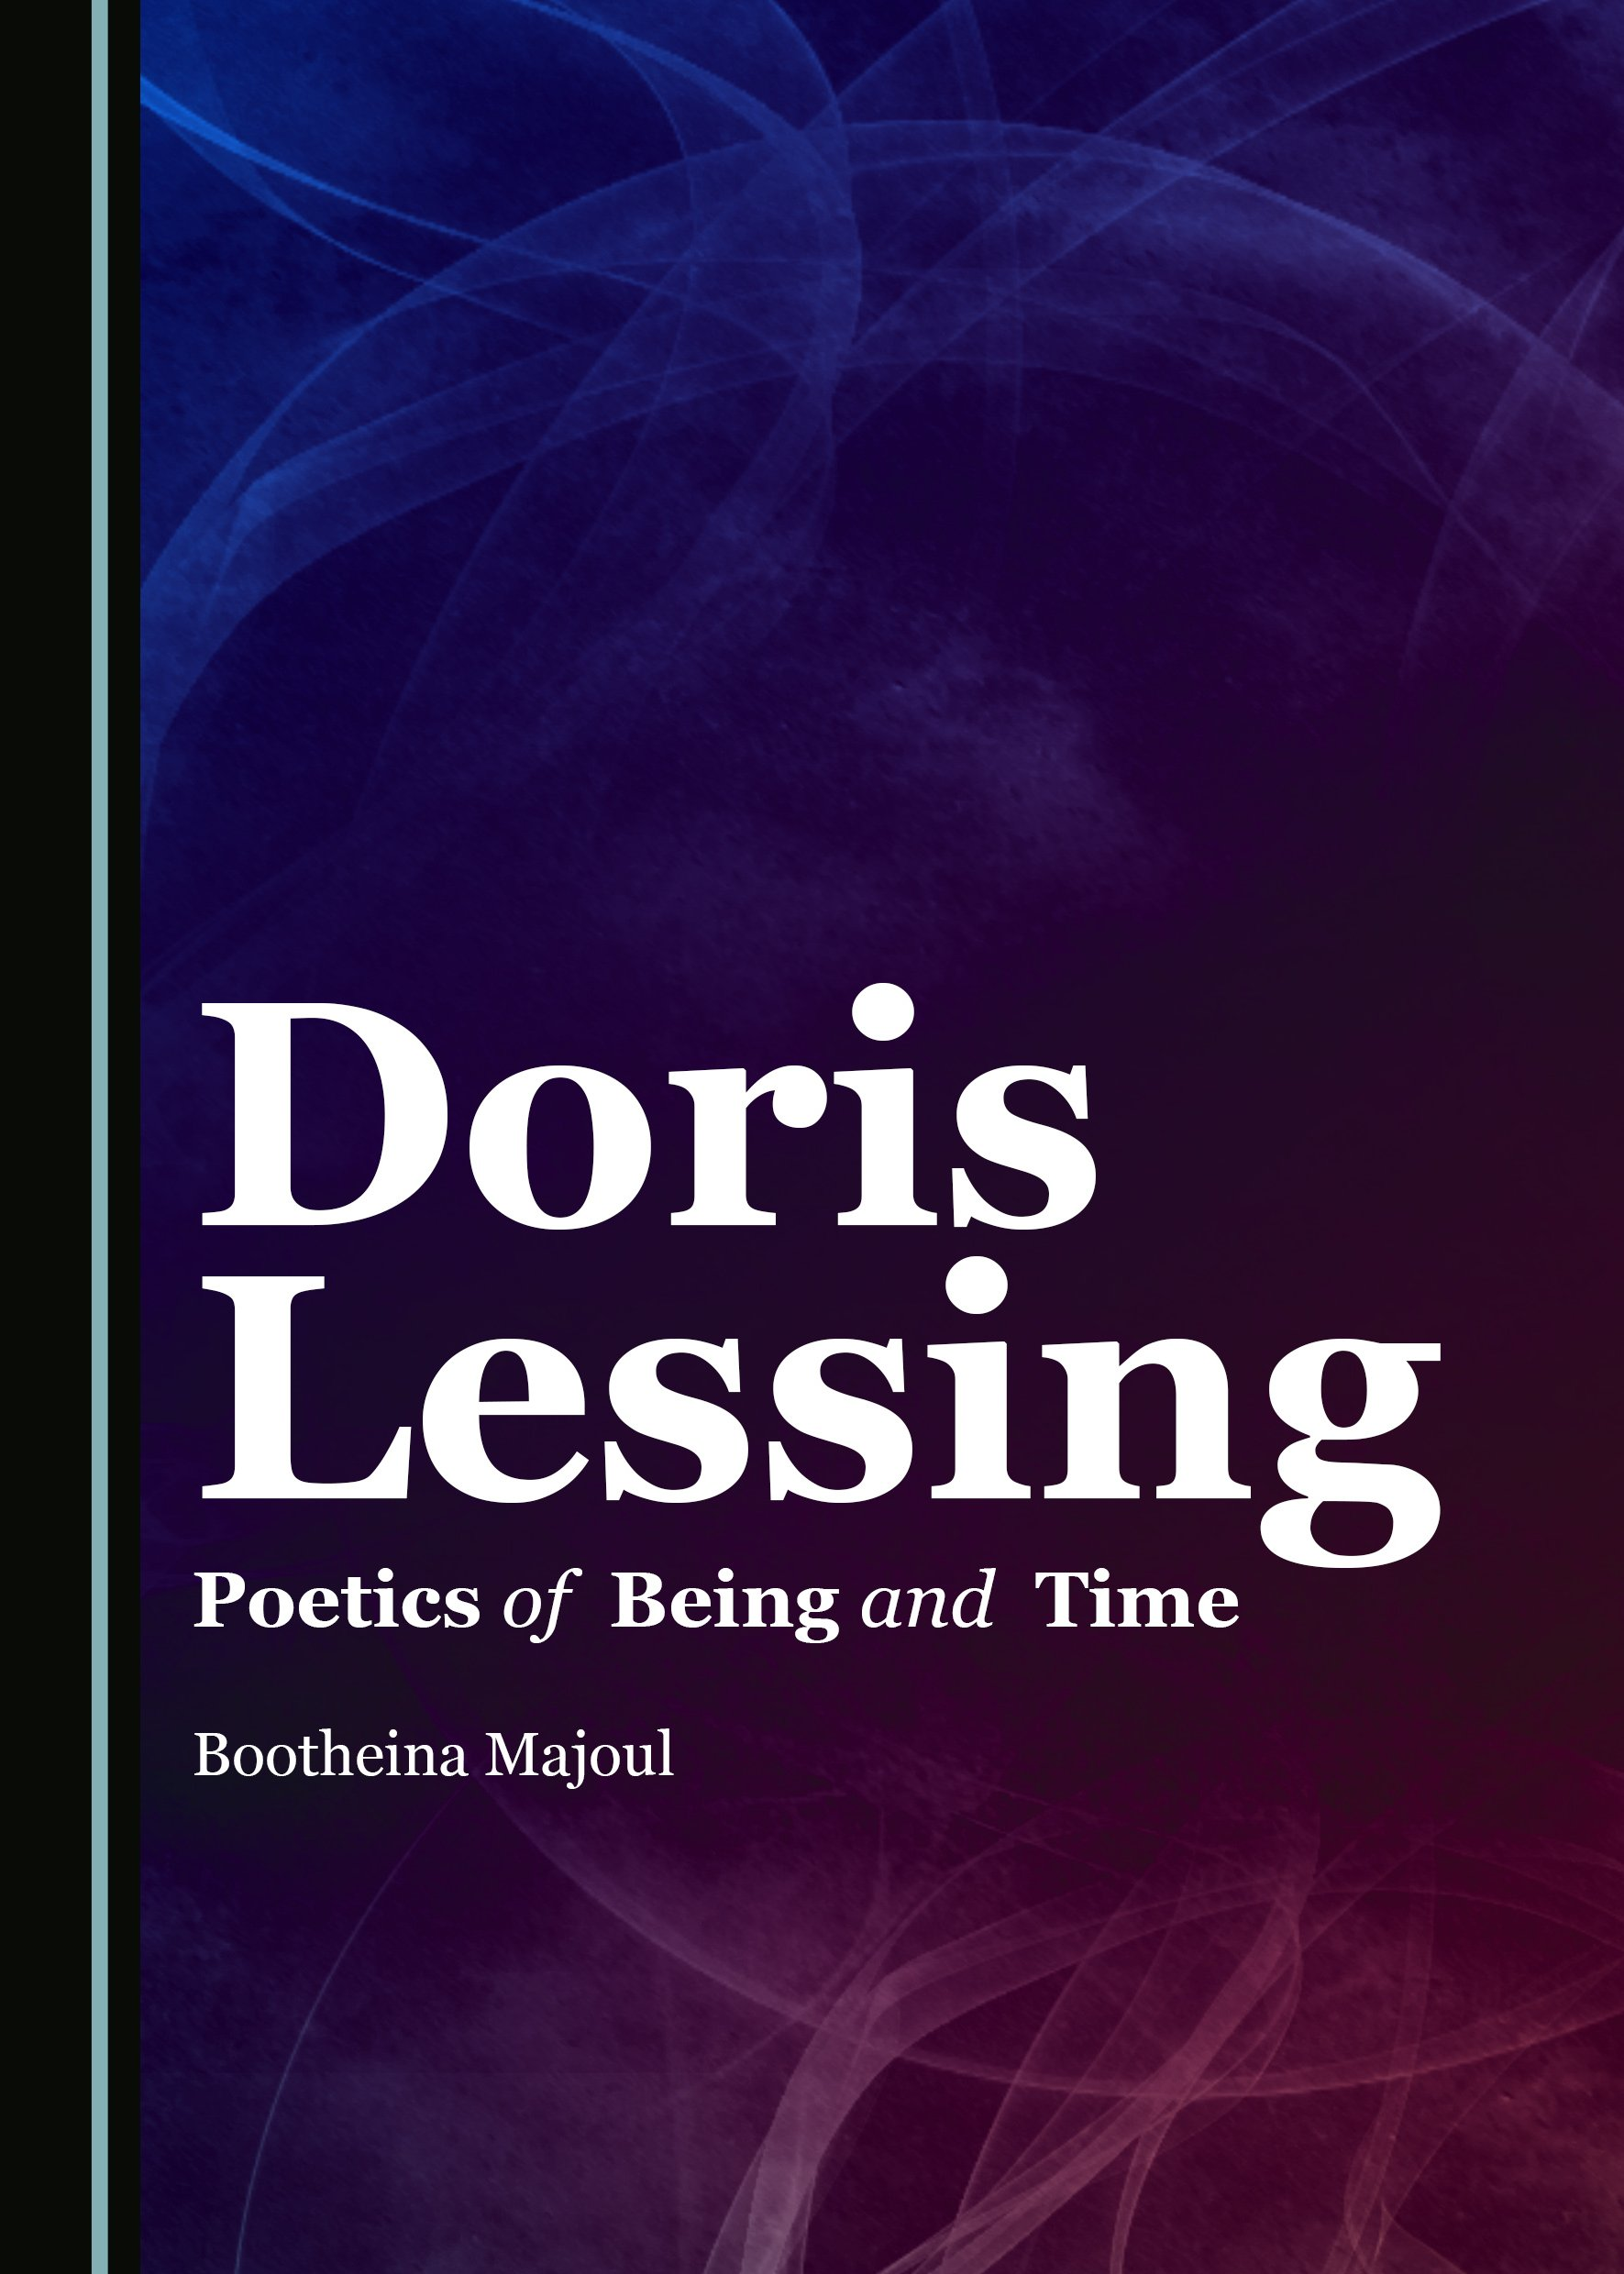 Doris Lessing: Poetics of Being and Time